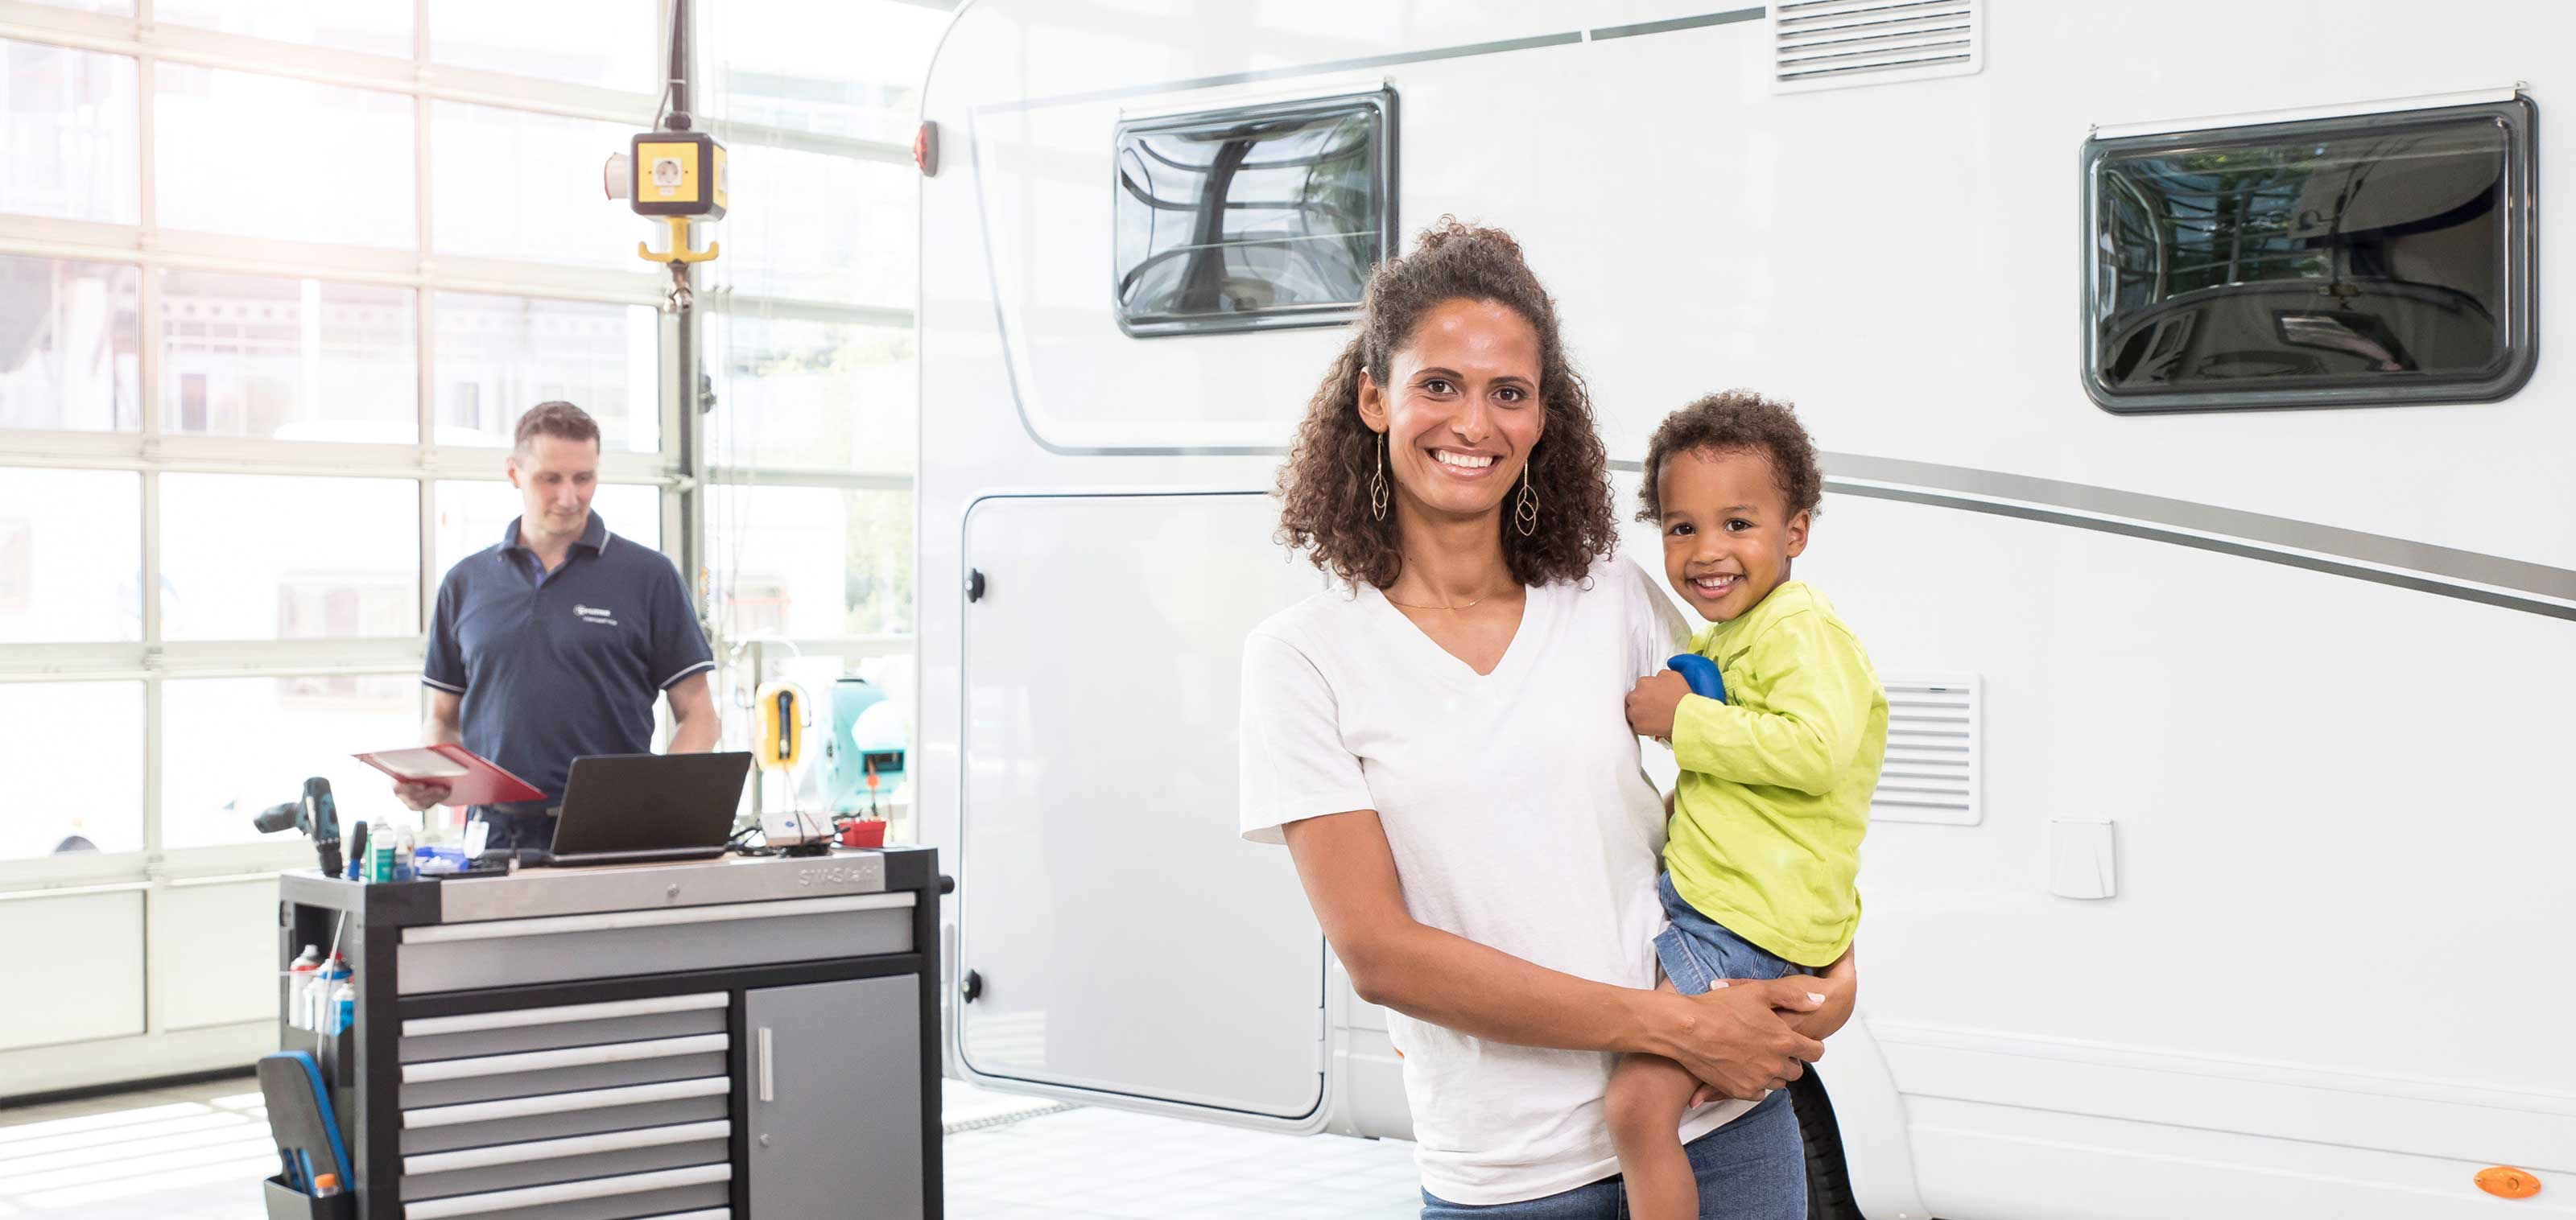 Woman with boy on her arm in front of motor caravan in the Truma service workshop